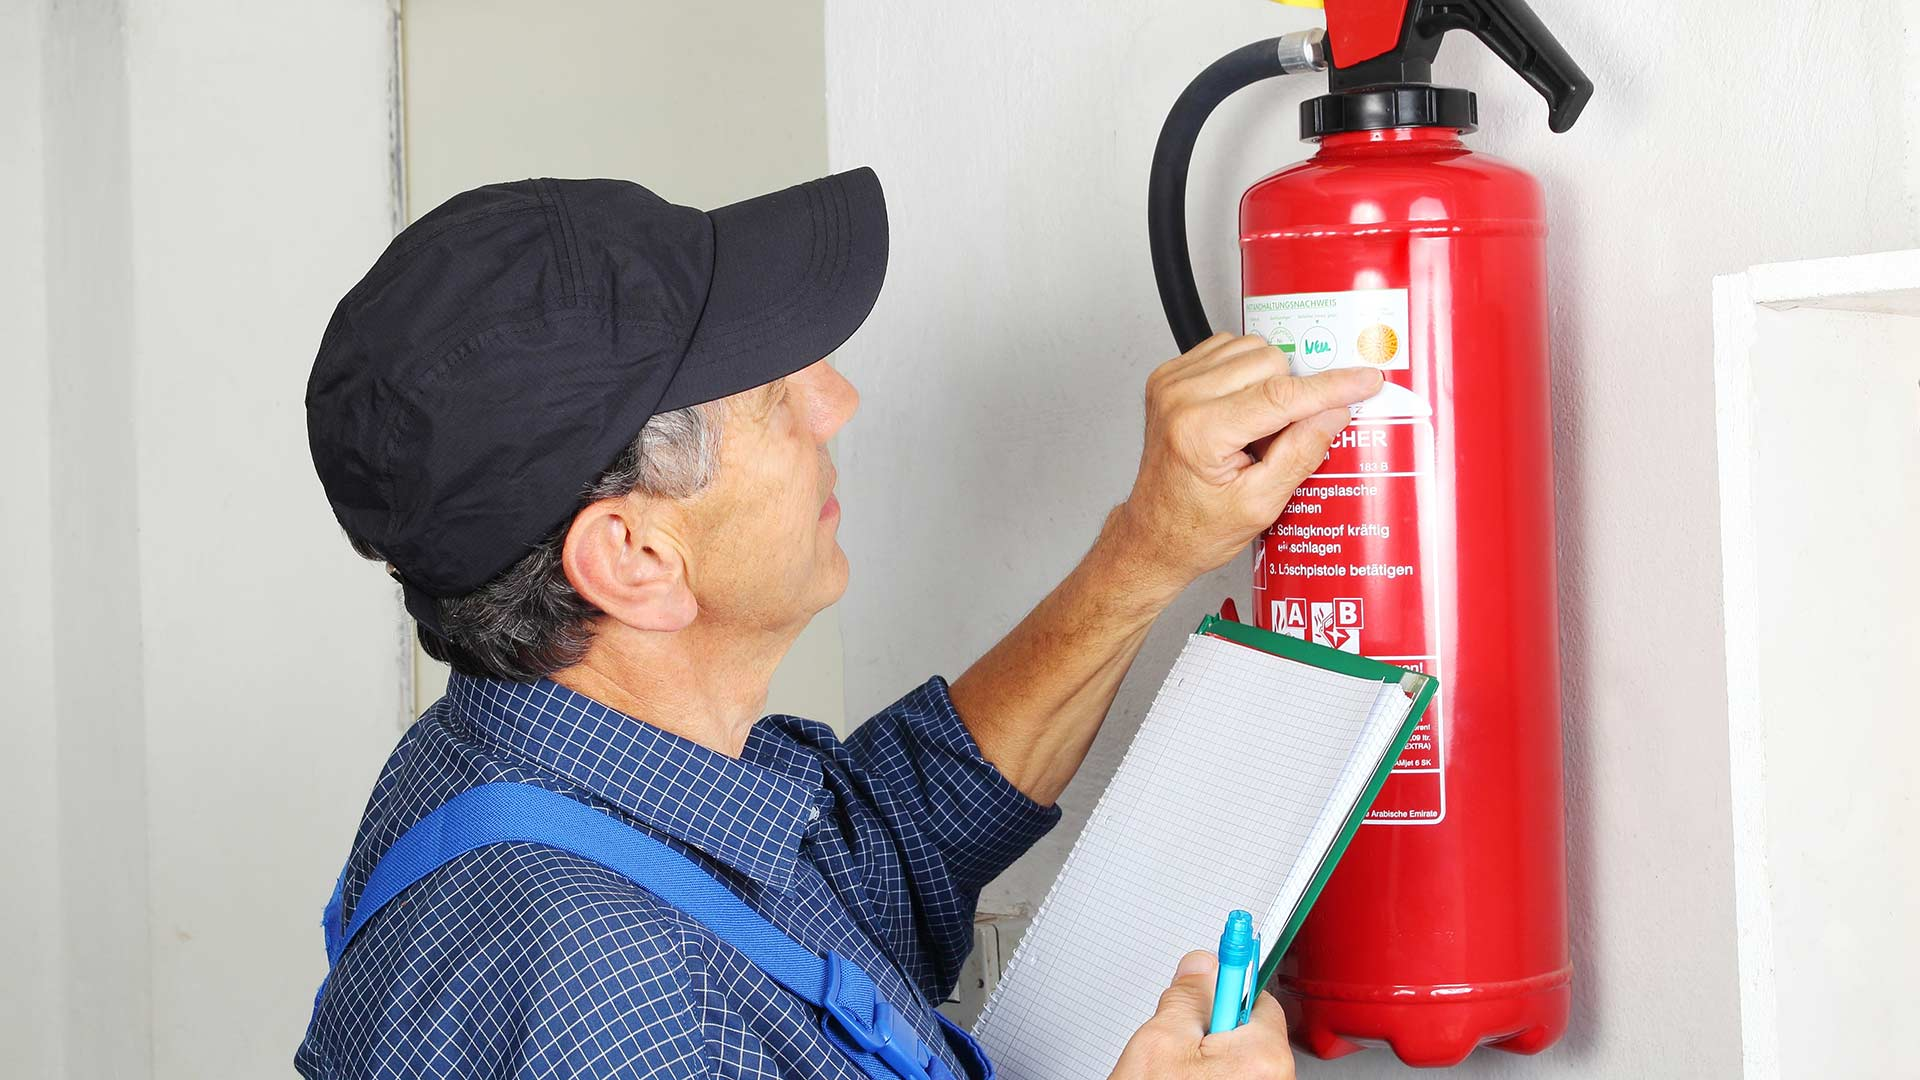 Man services a fire extinguisher that's hanging on the wall